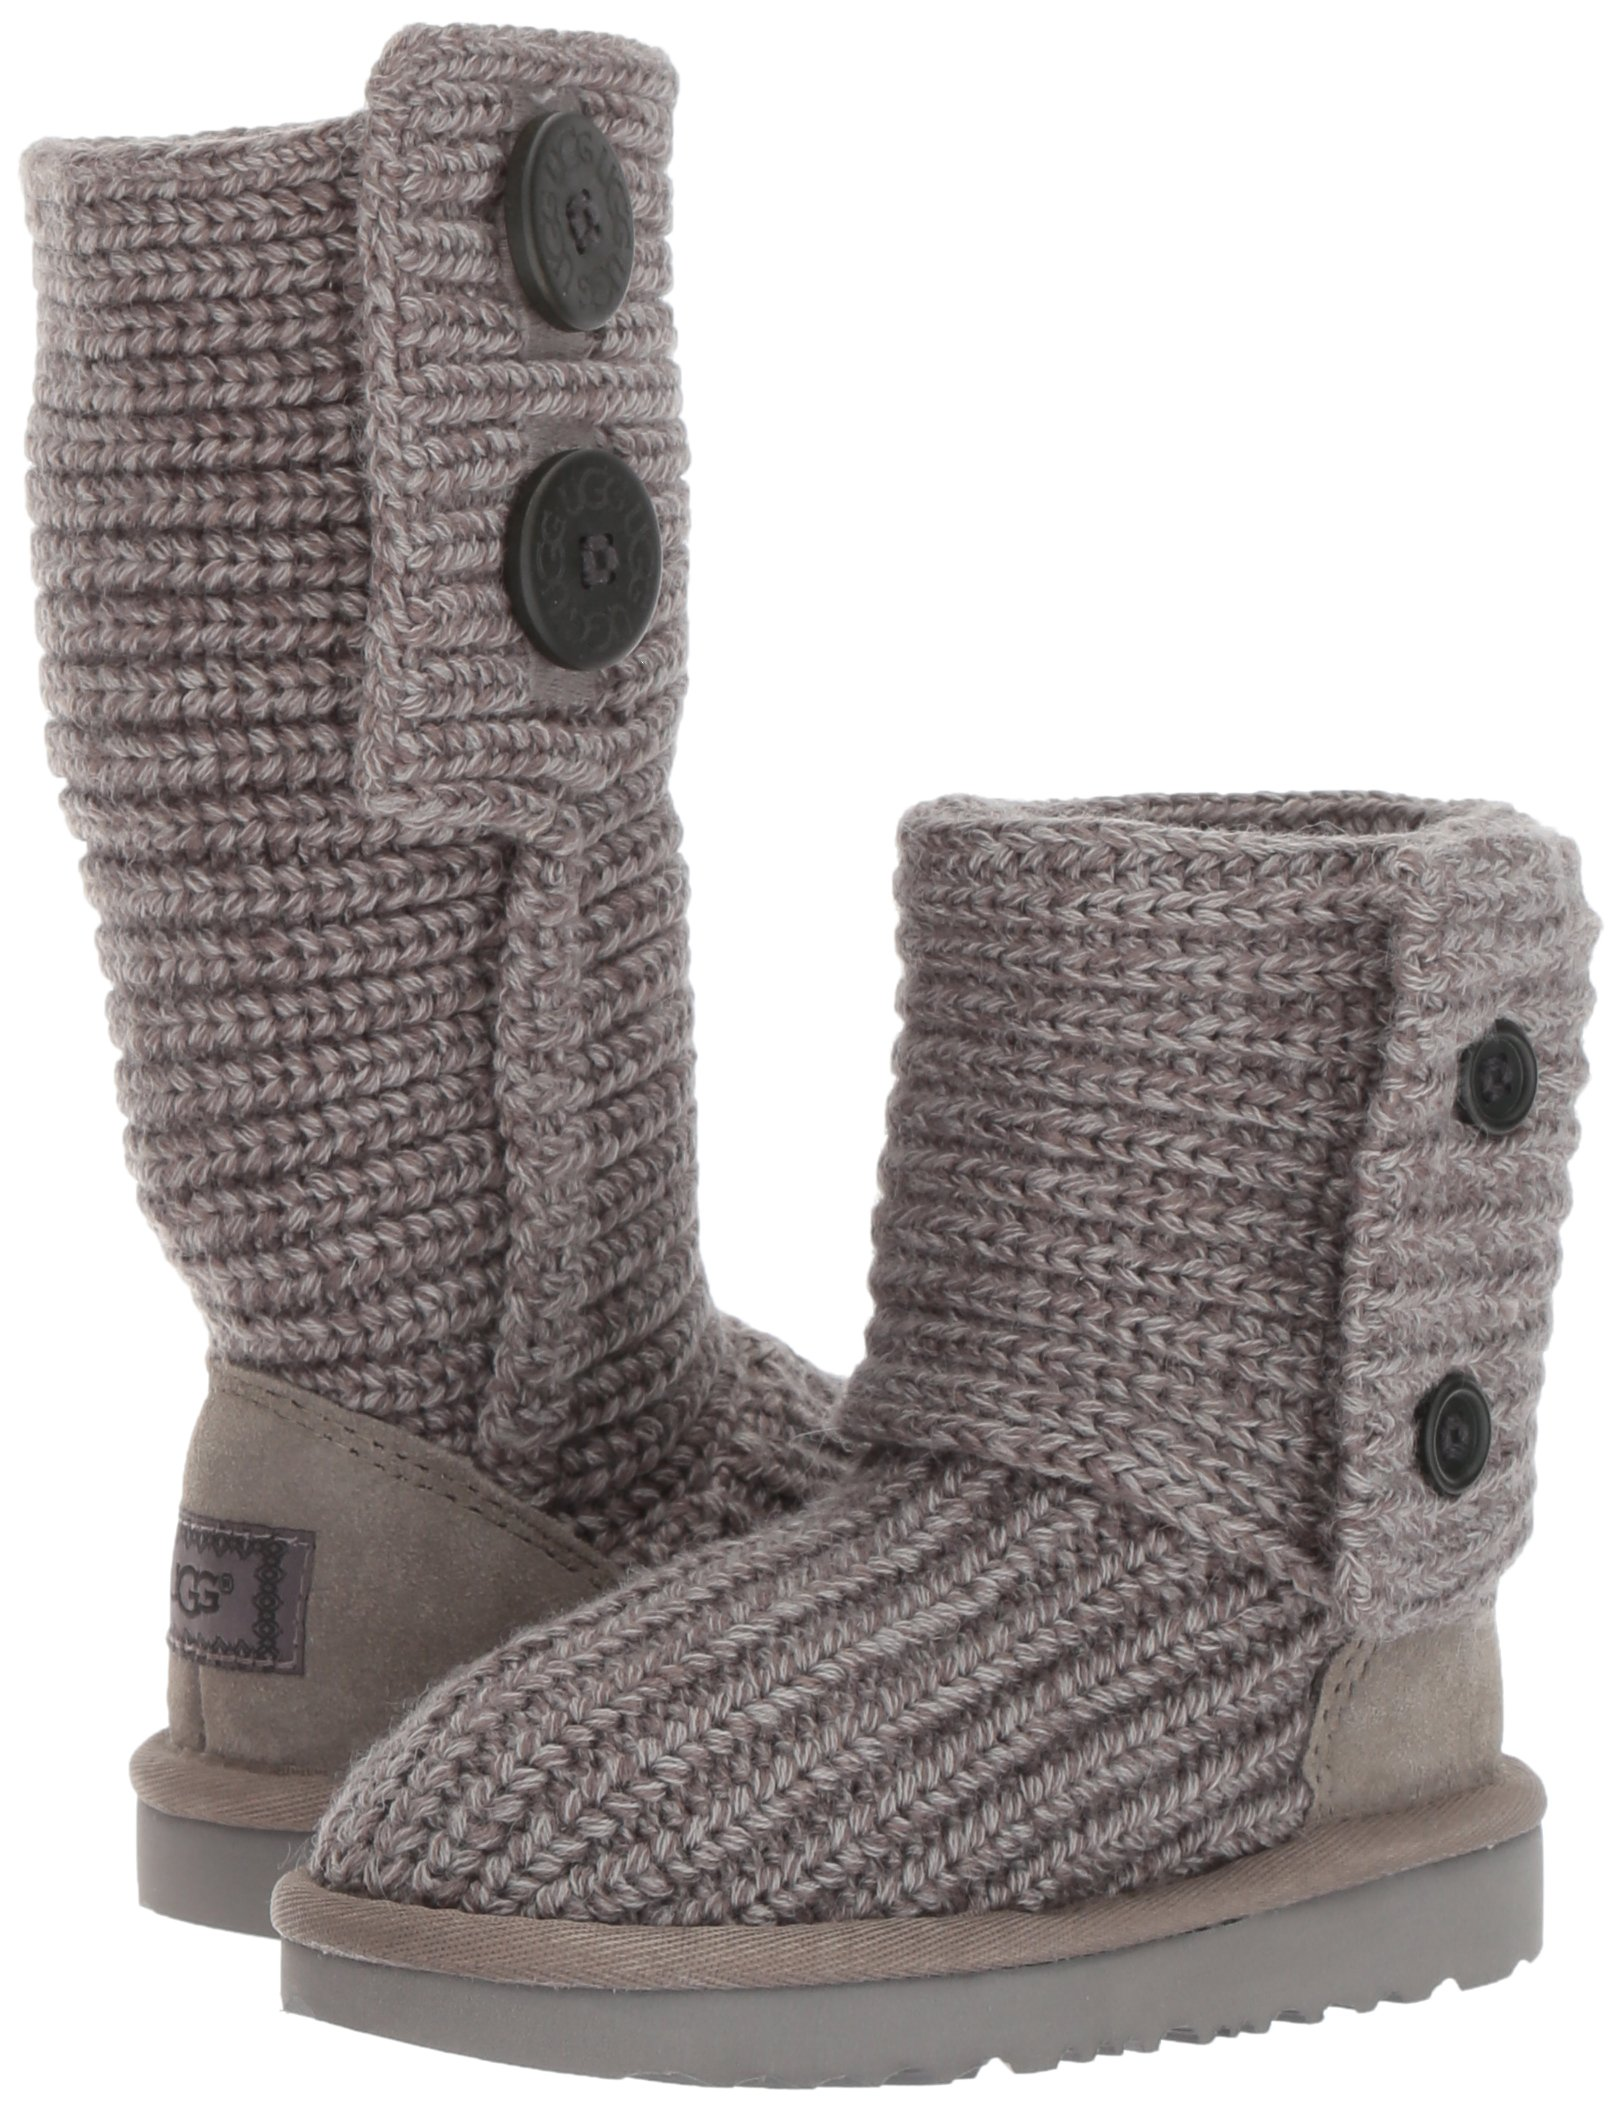 UGG Girls K Cardy II Pull-on Boot, Grey, 13 M US Little Kid by UGG (Image #6)